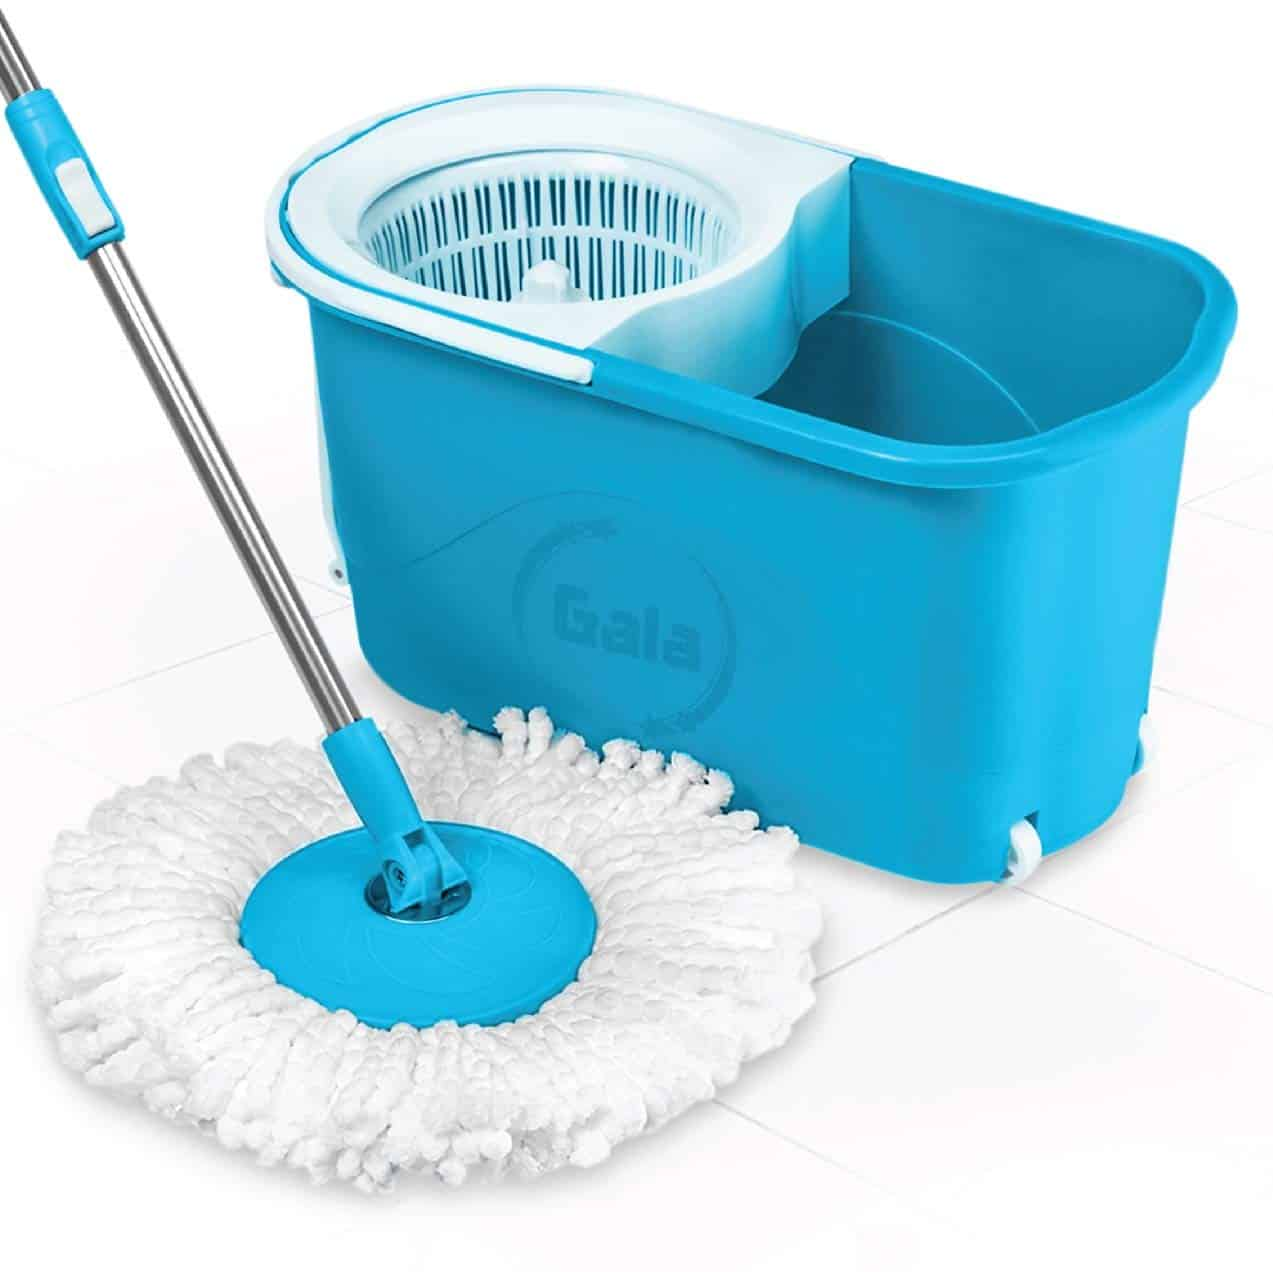 Best Gala Spin Mop in India 2020 (Very Useful Product for Home, Office) 7